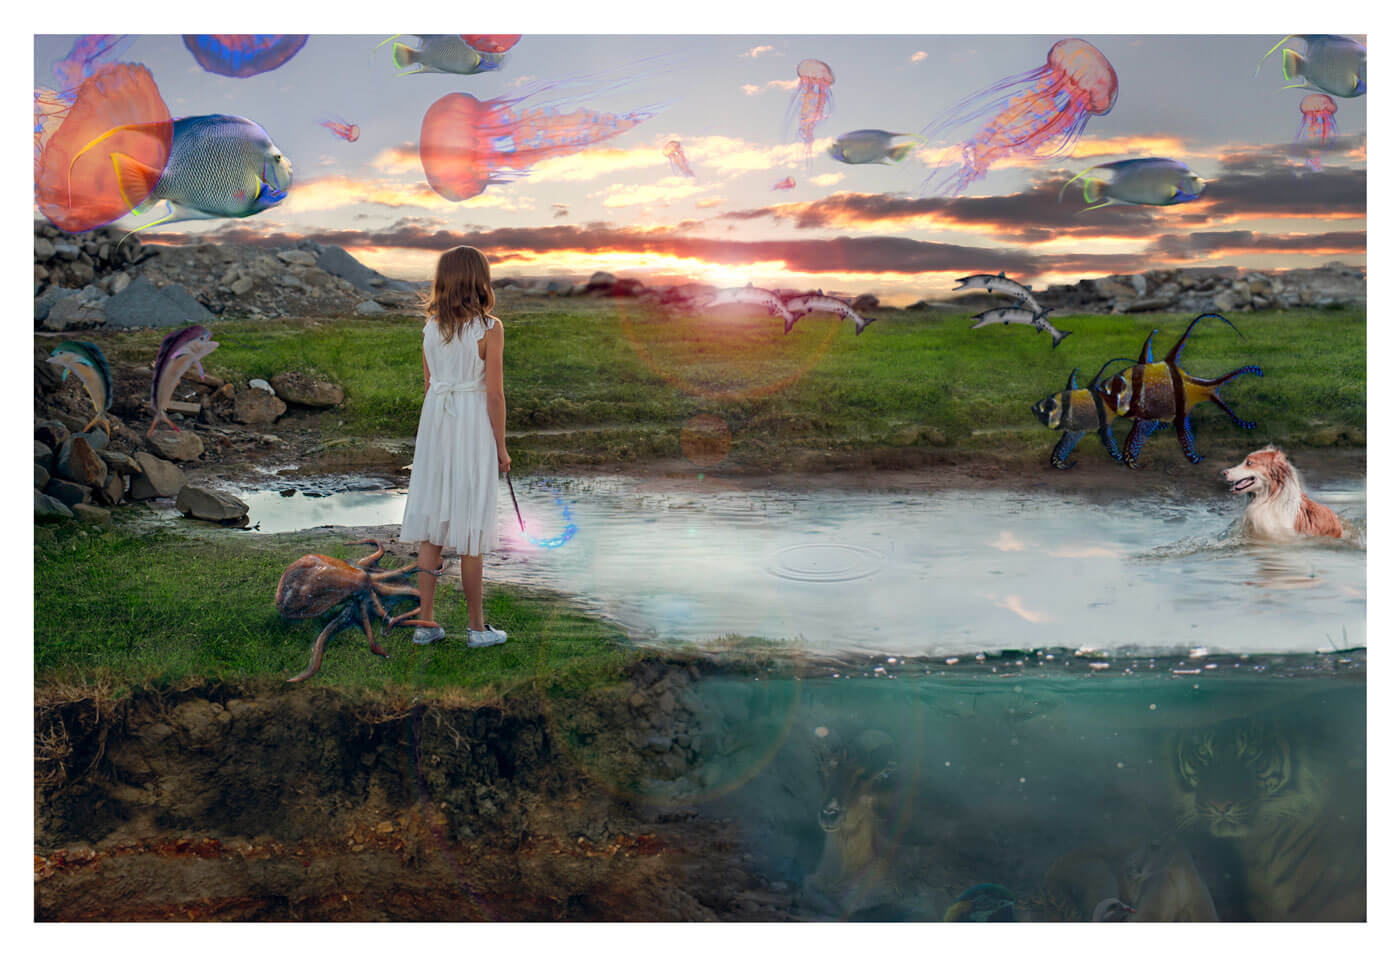 Fantasy image of girl overlooking a pond